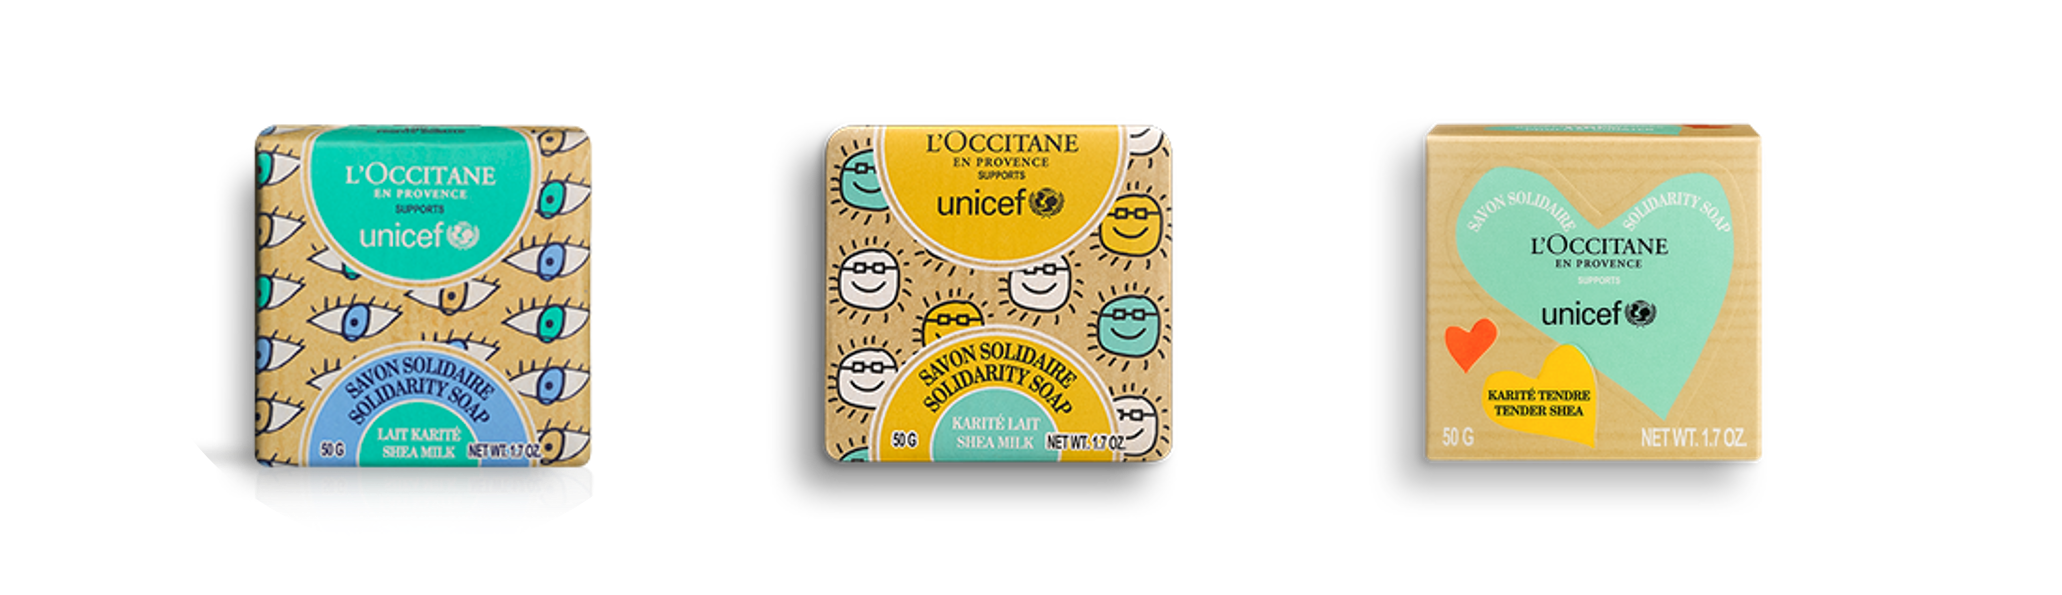 L'OCCITANE Solidarity Soaps in support of UNICEF